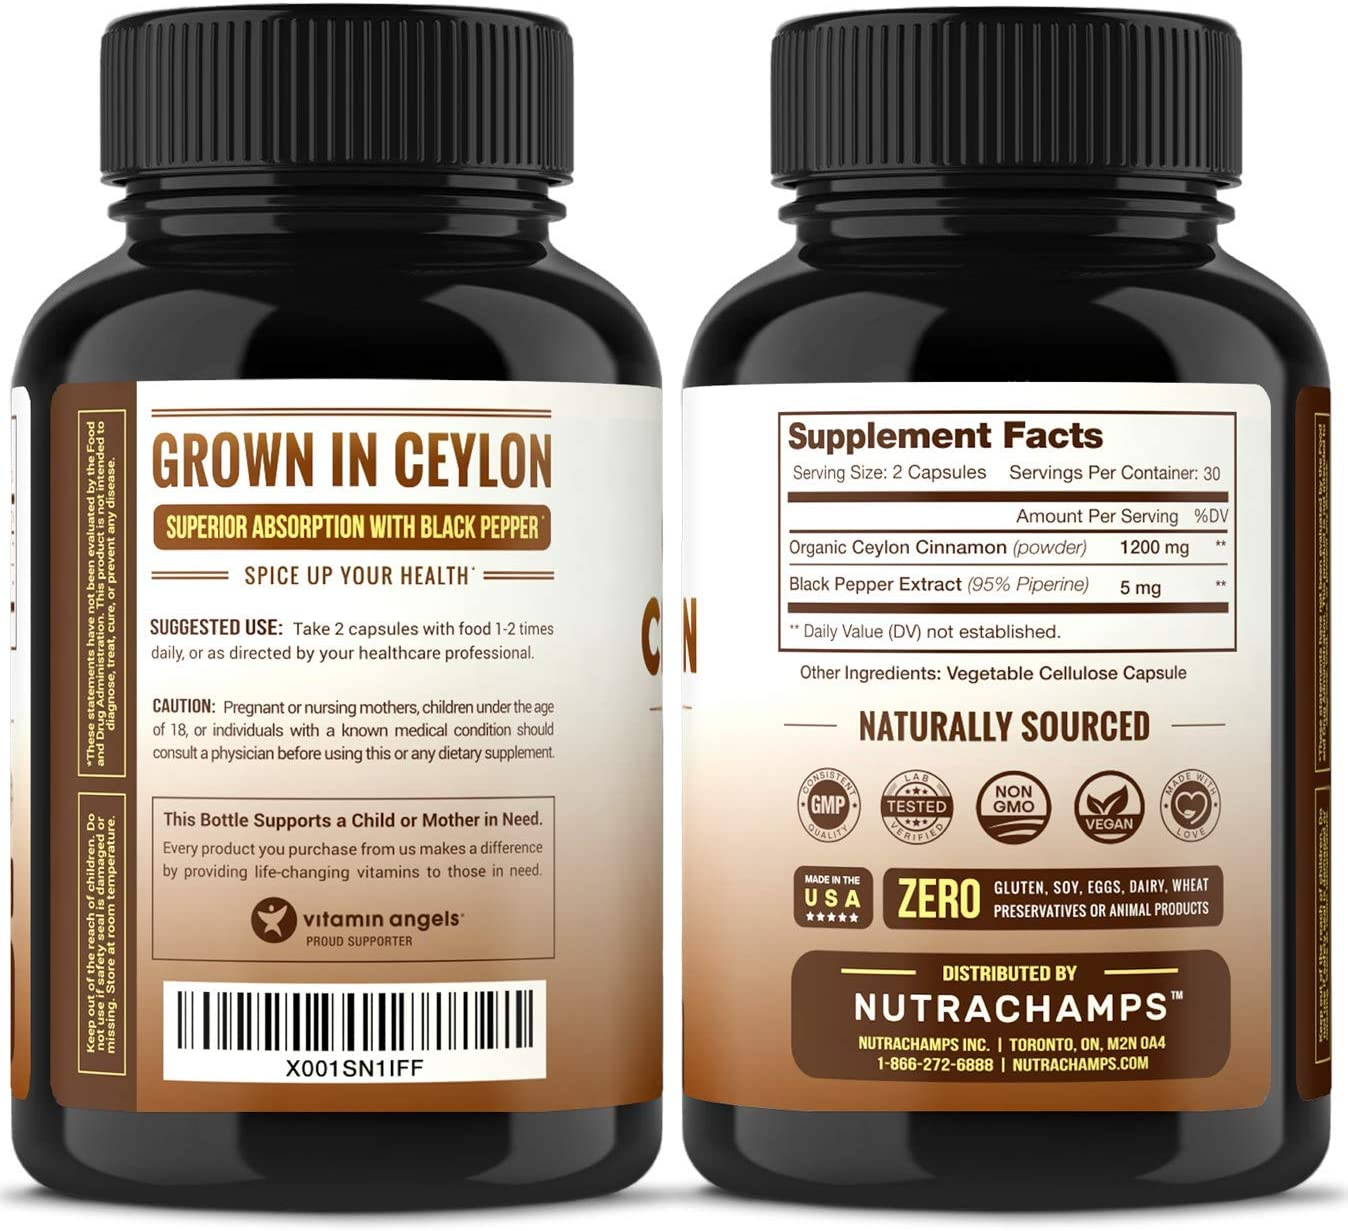 Organic Ceylon Cinnamon Capsules – 1200mg Powder for Healthy Blood Sugar, Joint Support, Anti-inflammatory Antioxidant Benefits – Made from True Cinnamon Bark from Sri Lanka